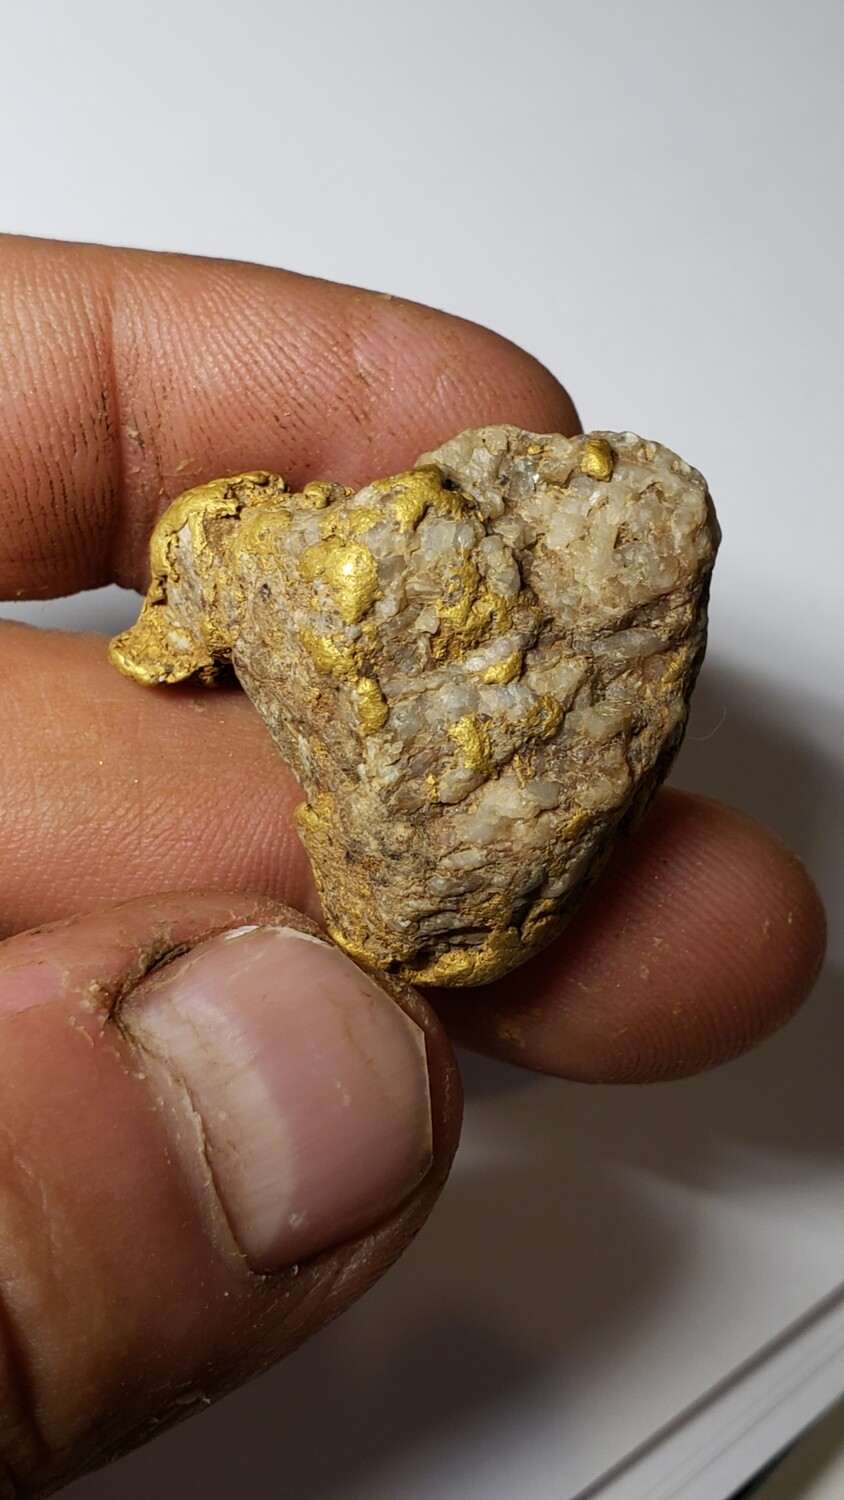 44.93 gram gold and quartz nugget